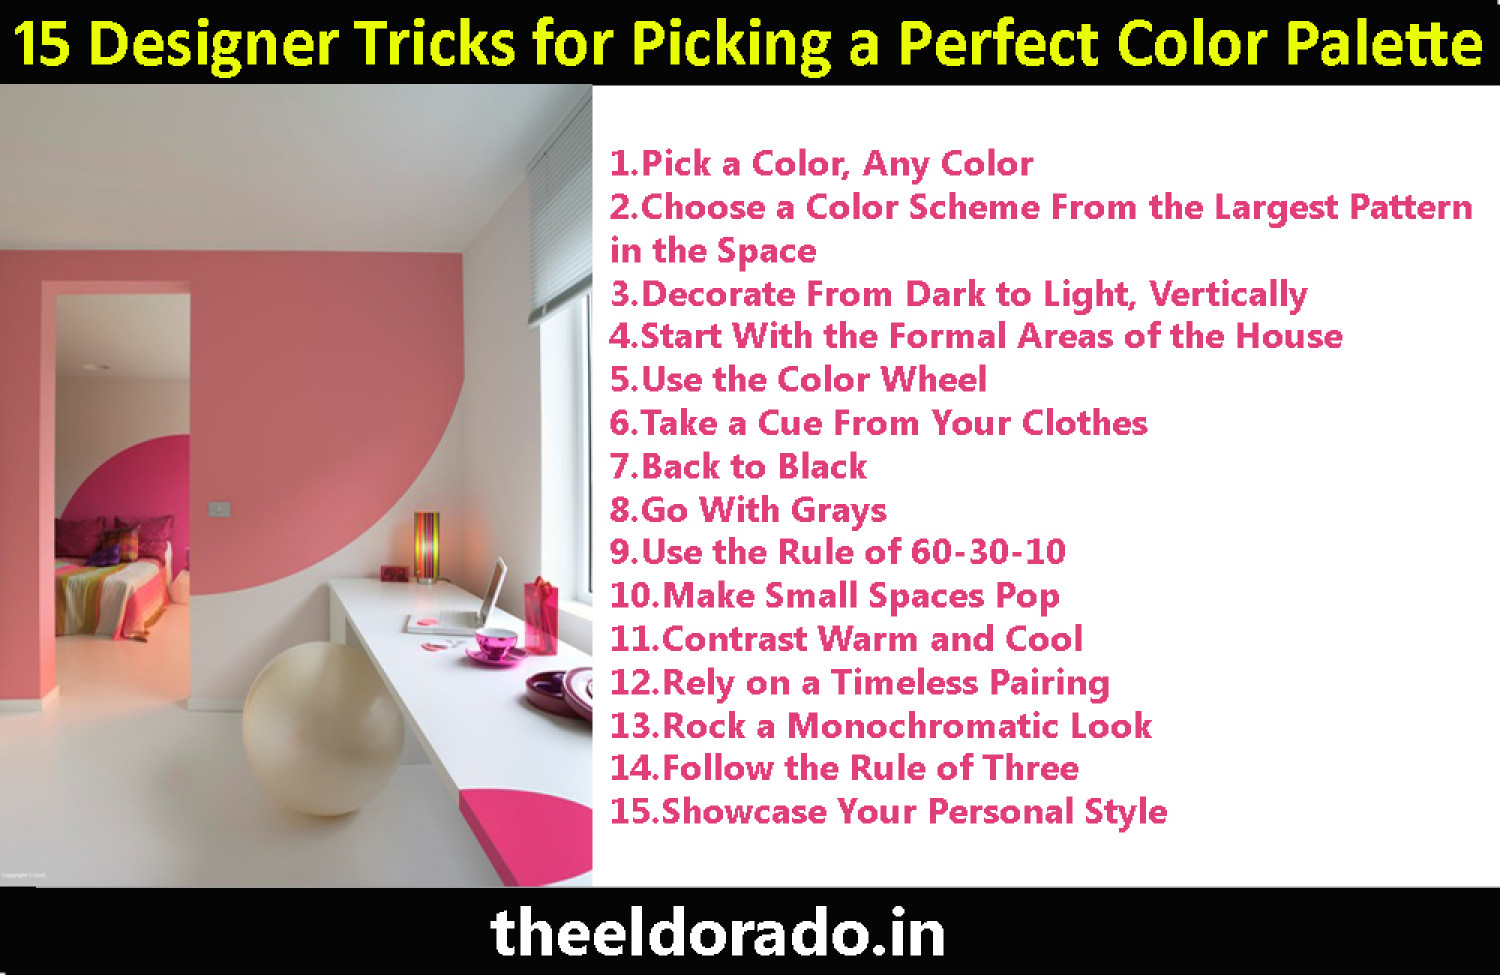 15 Designer Tricks for Picking a Perfect Color Palette Infographic